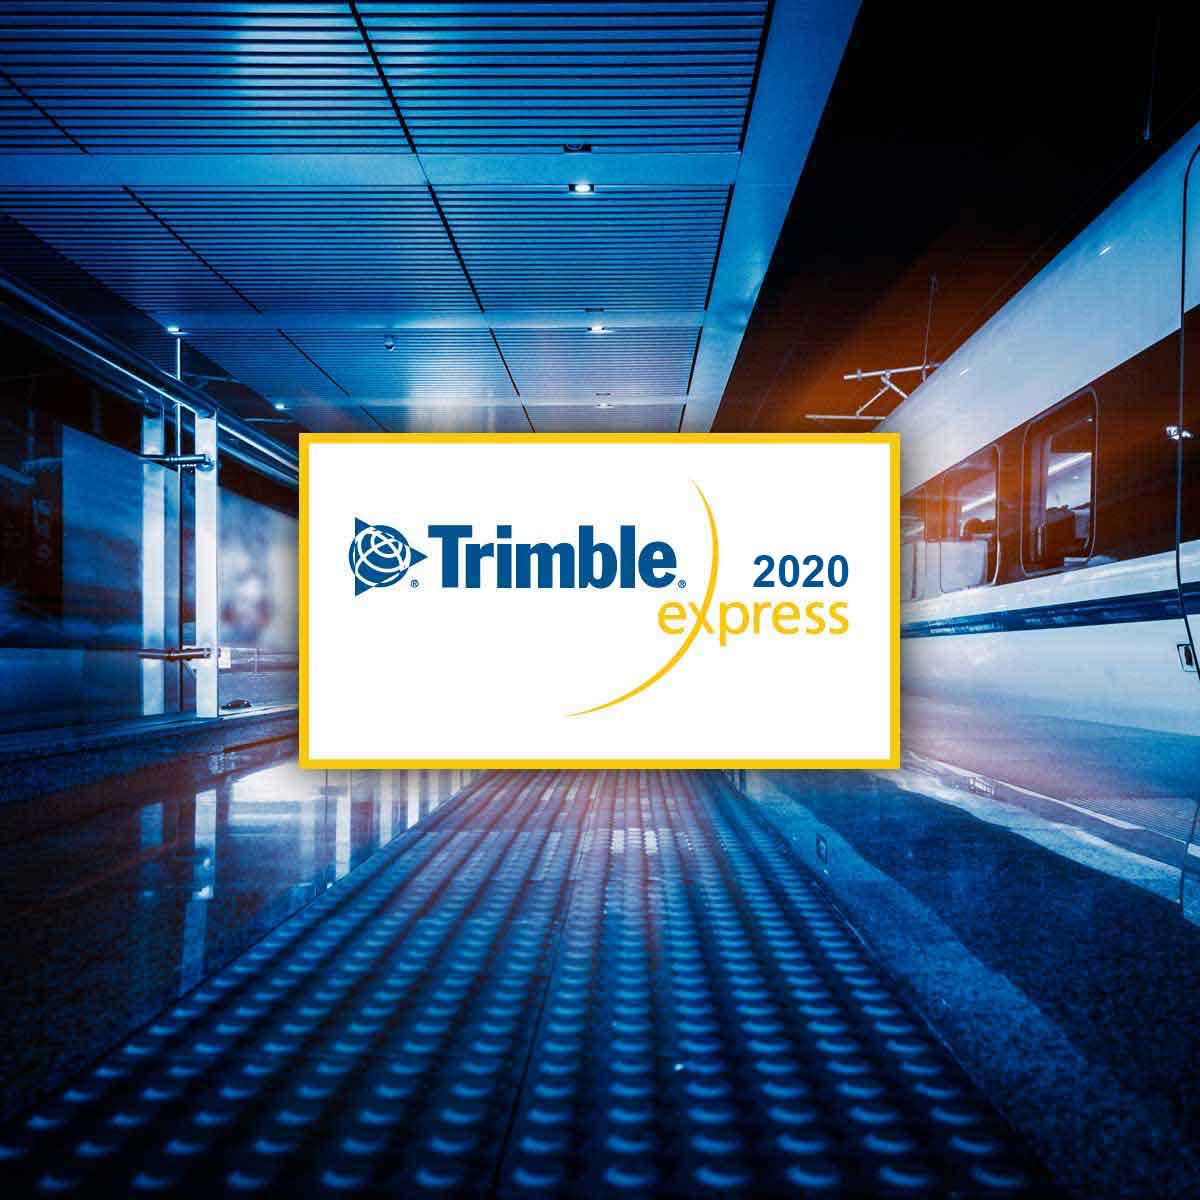 Trimble Express 2020